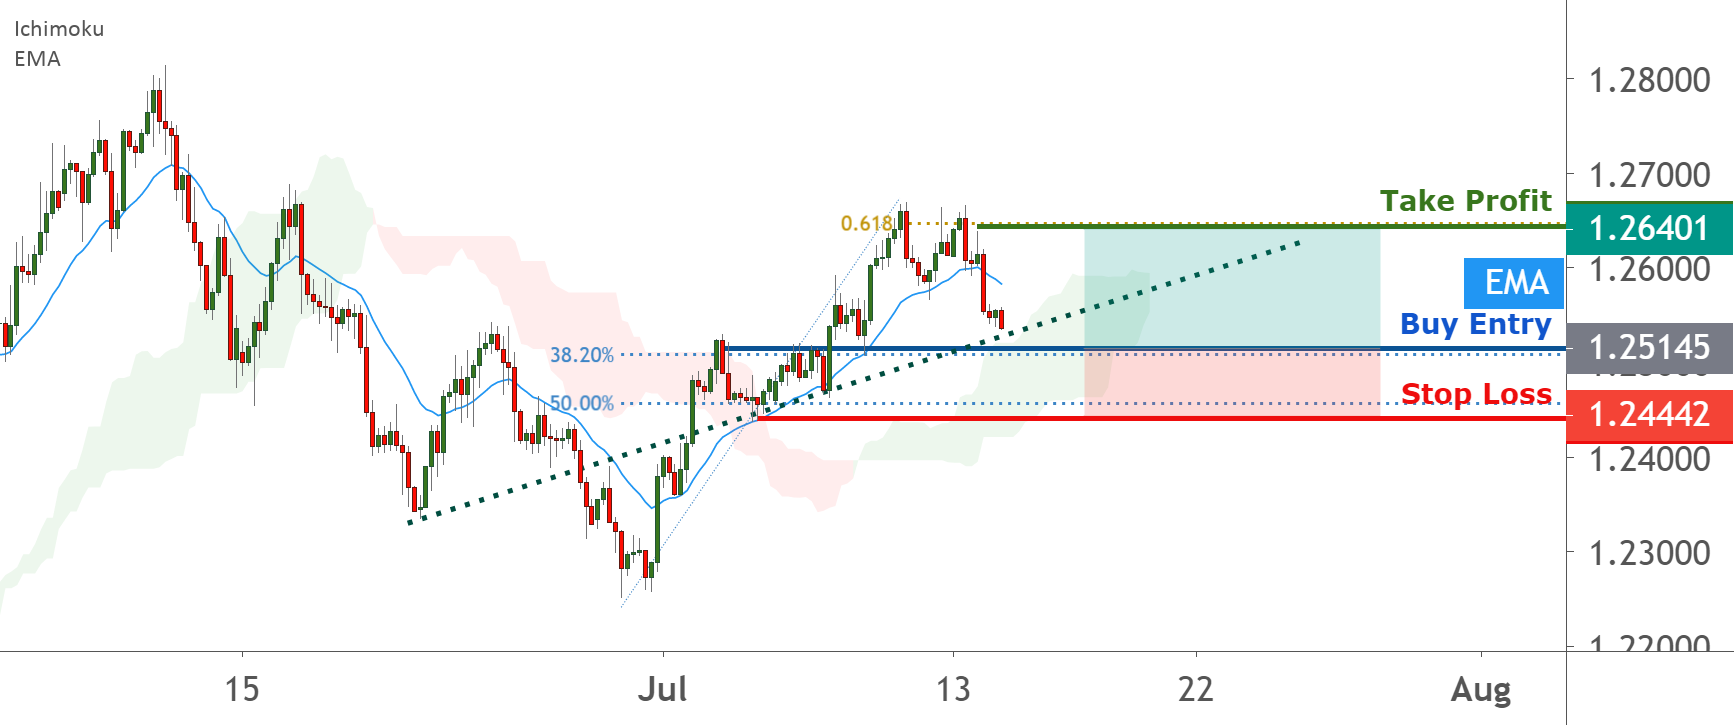 GBPUSD on a rising trend, further upside | 14 July 2020 for FX:GBPUSD by FXCM